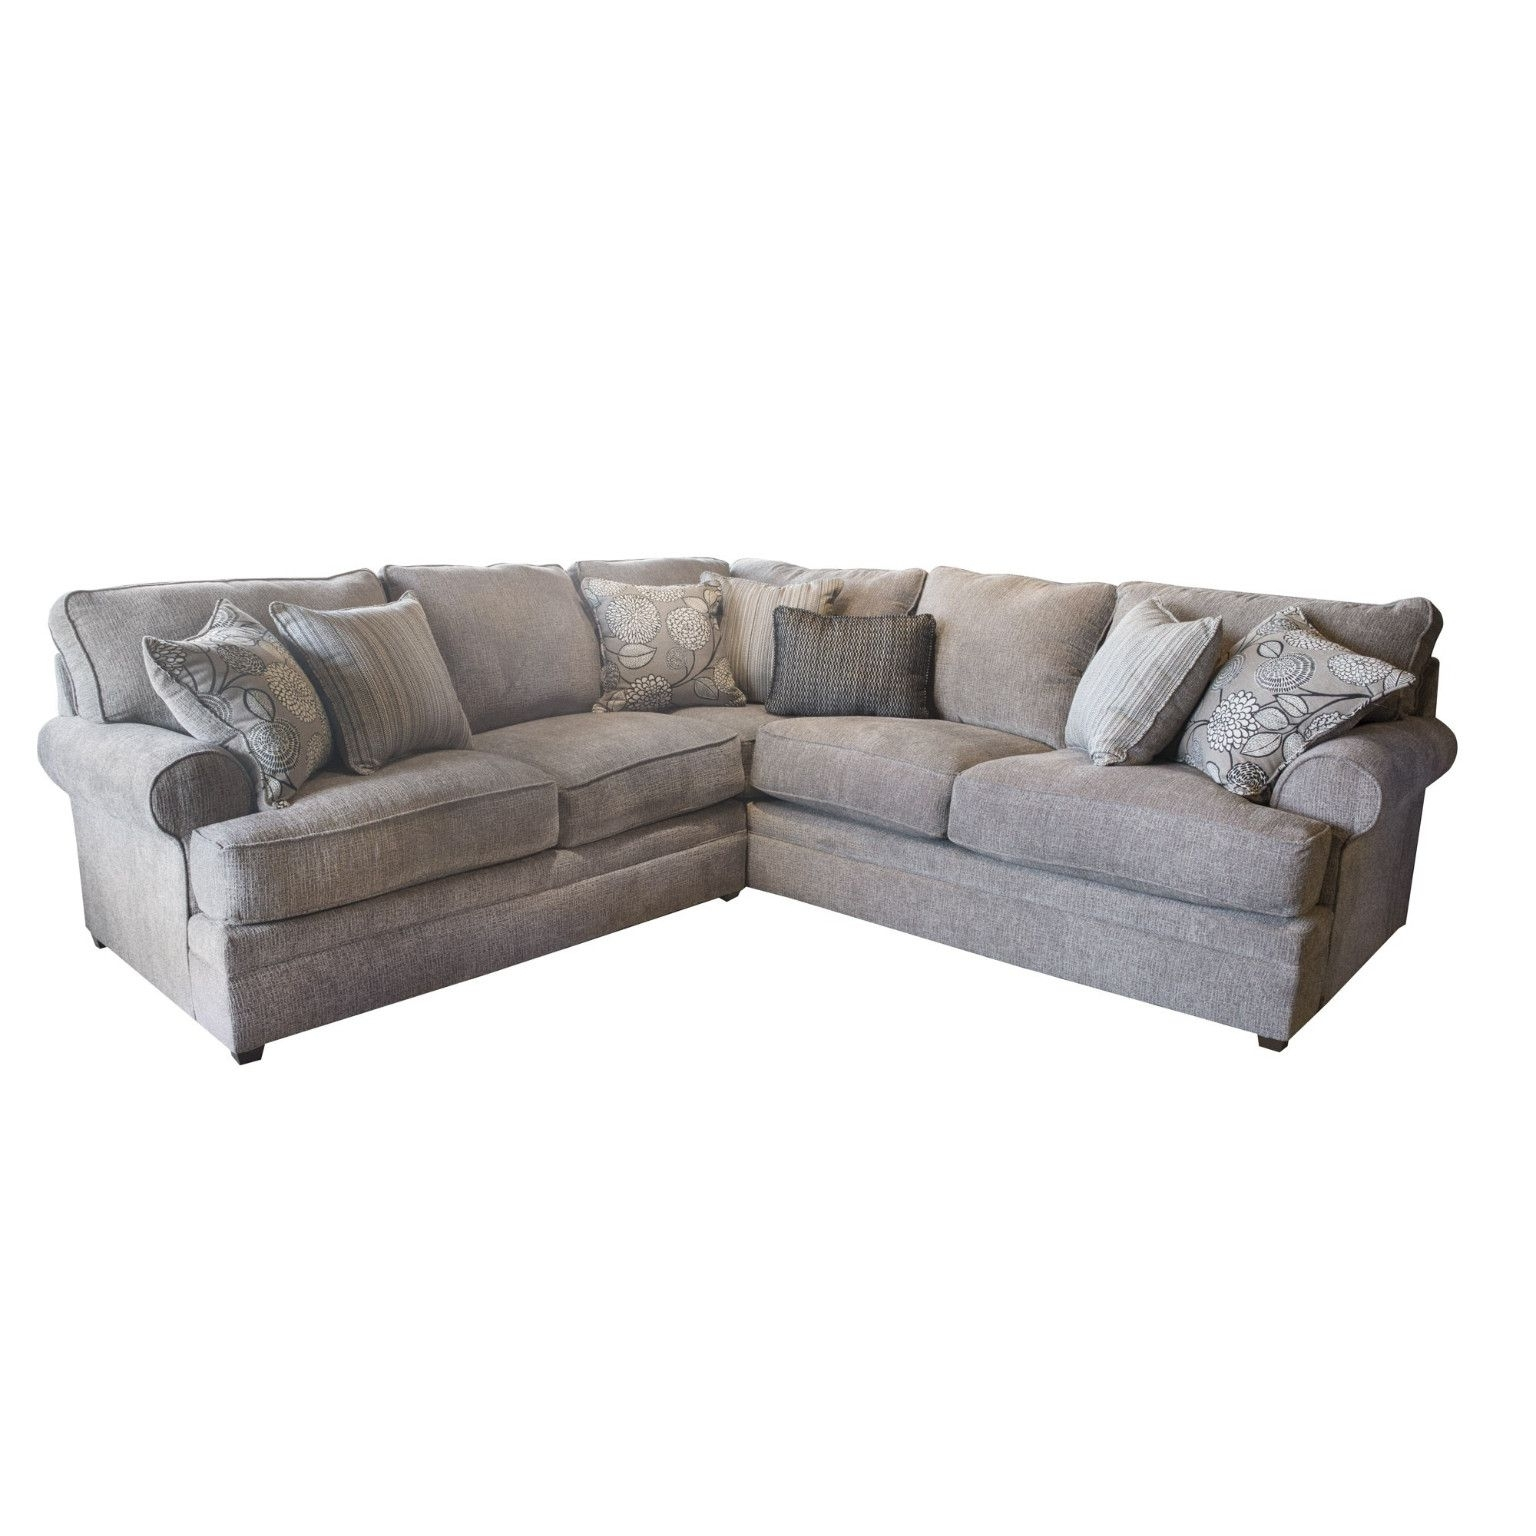 Macey Pewter 2 Piece Sectional Beauty Restsimmons $ (View 3 of 15)